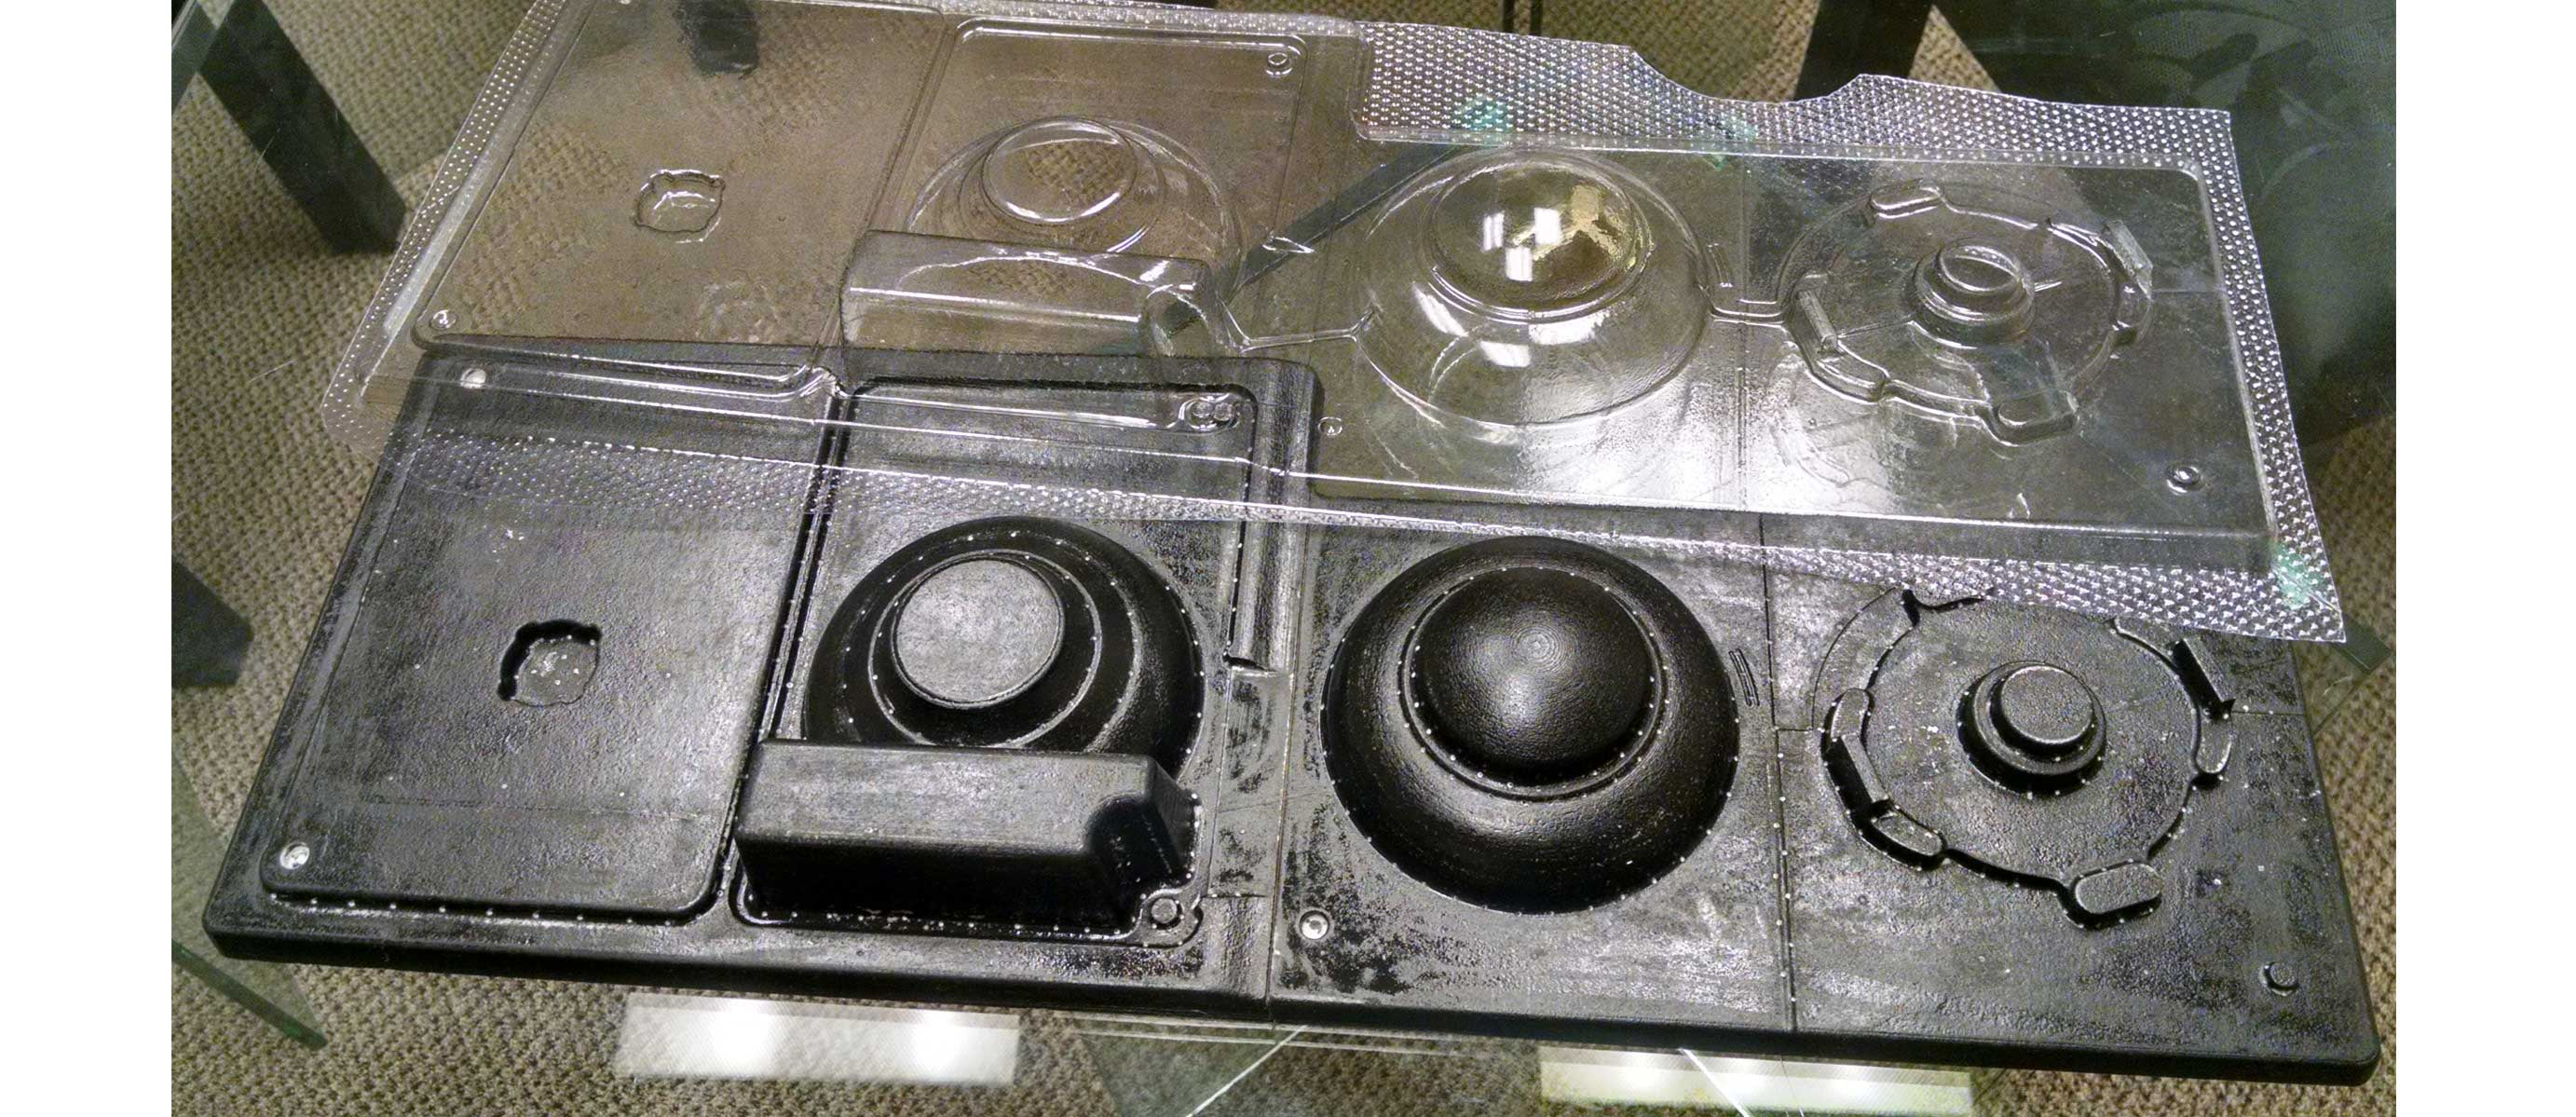 manufacturing molds